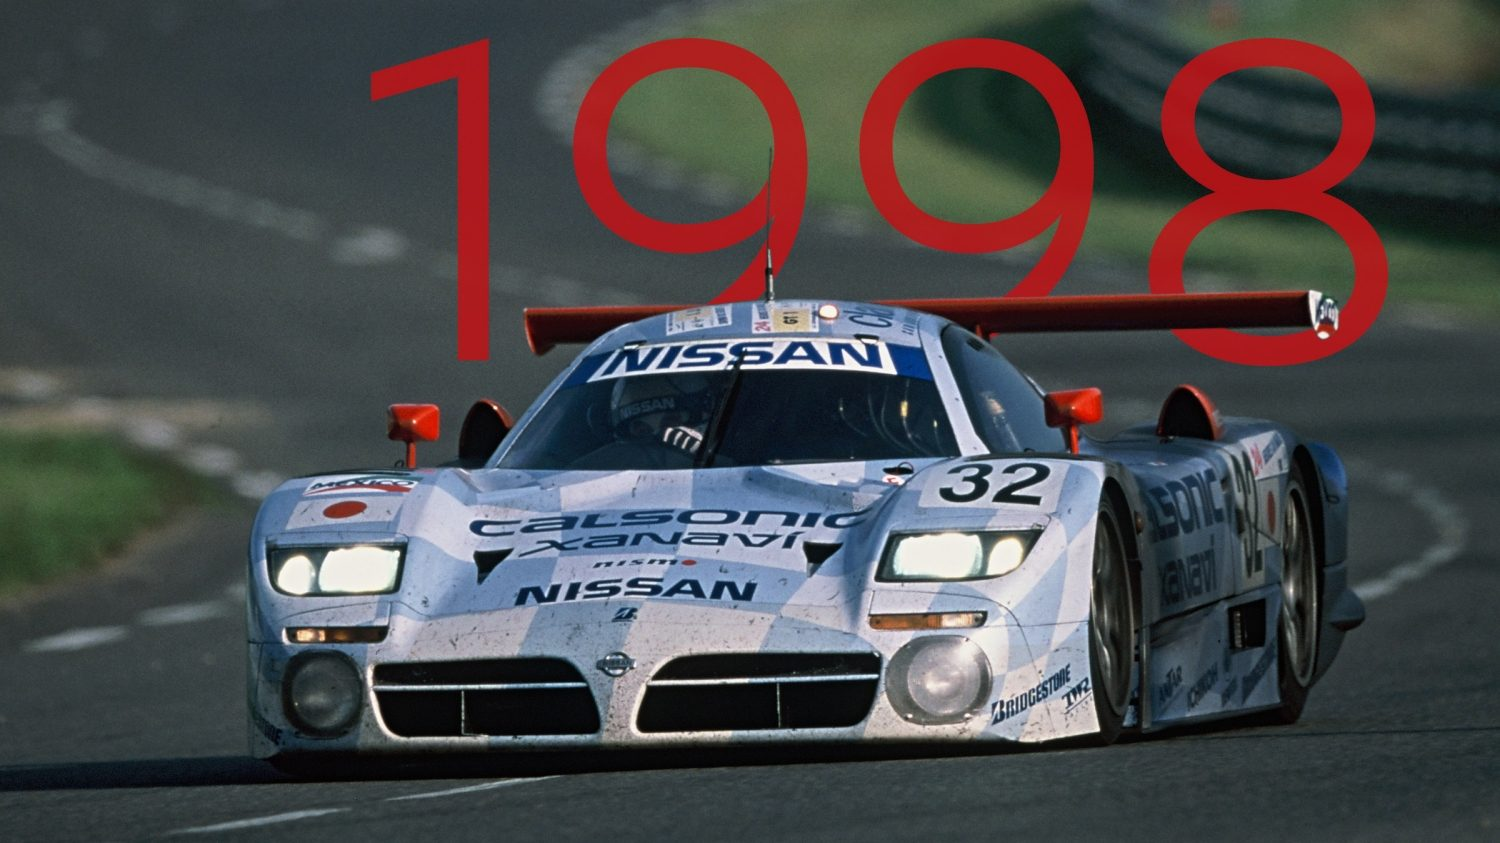 1998 Nissan R390 GT1 racing at LeMans